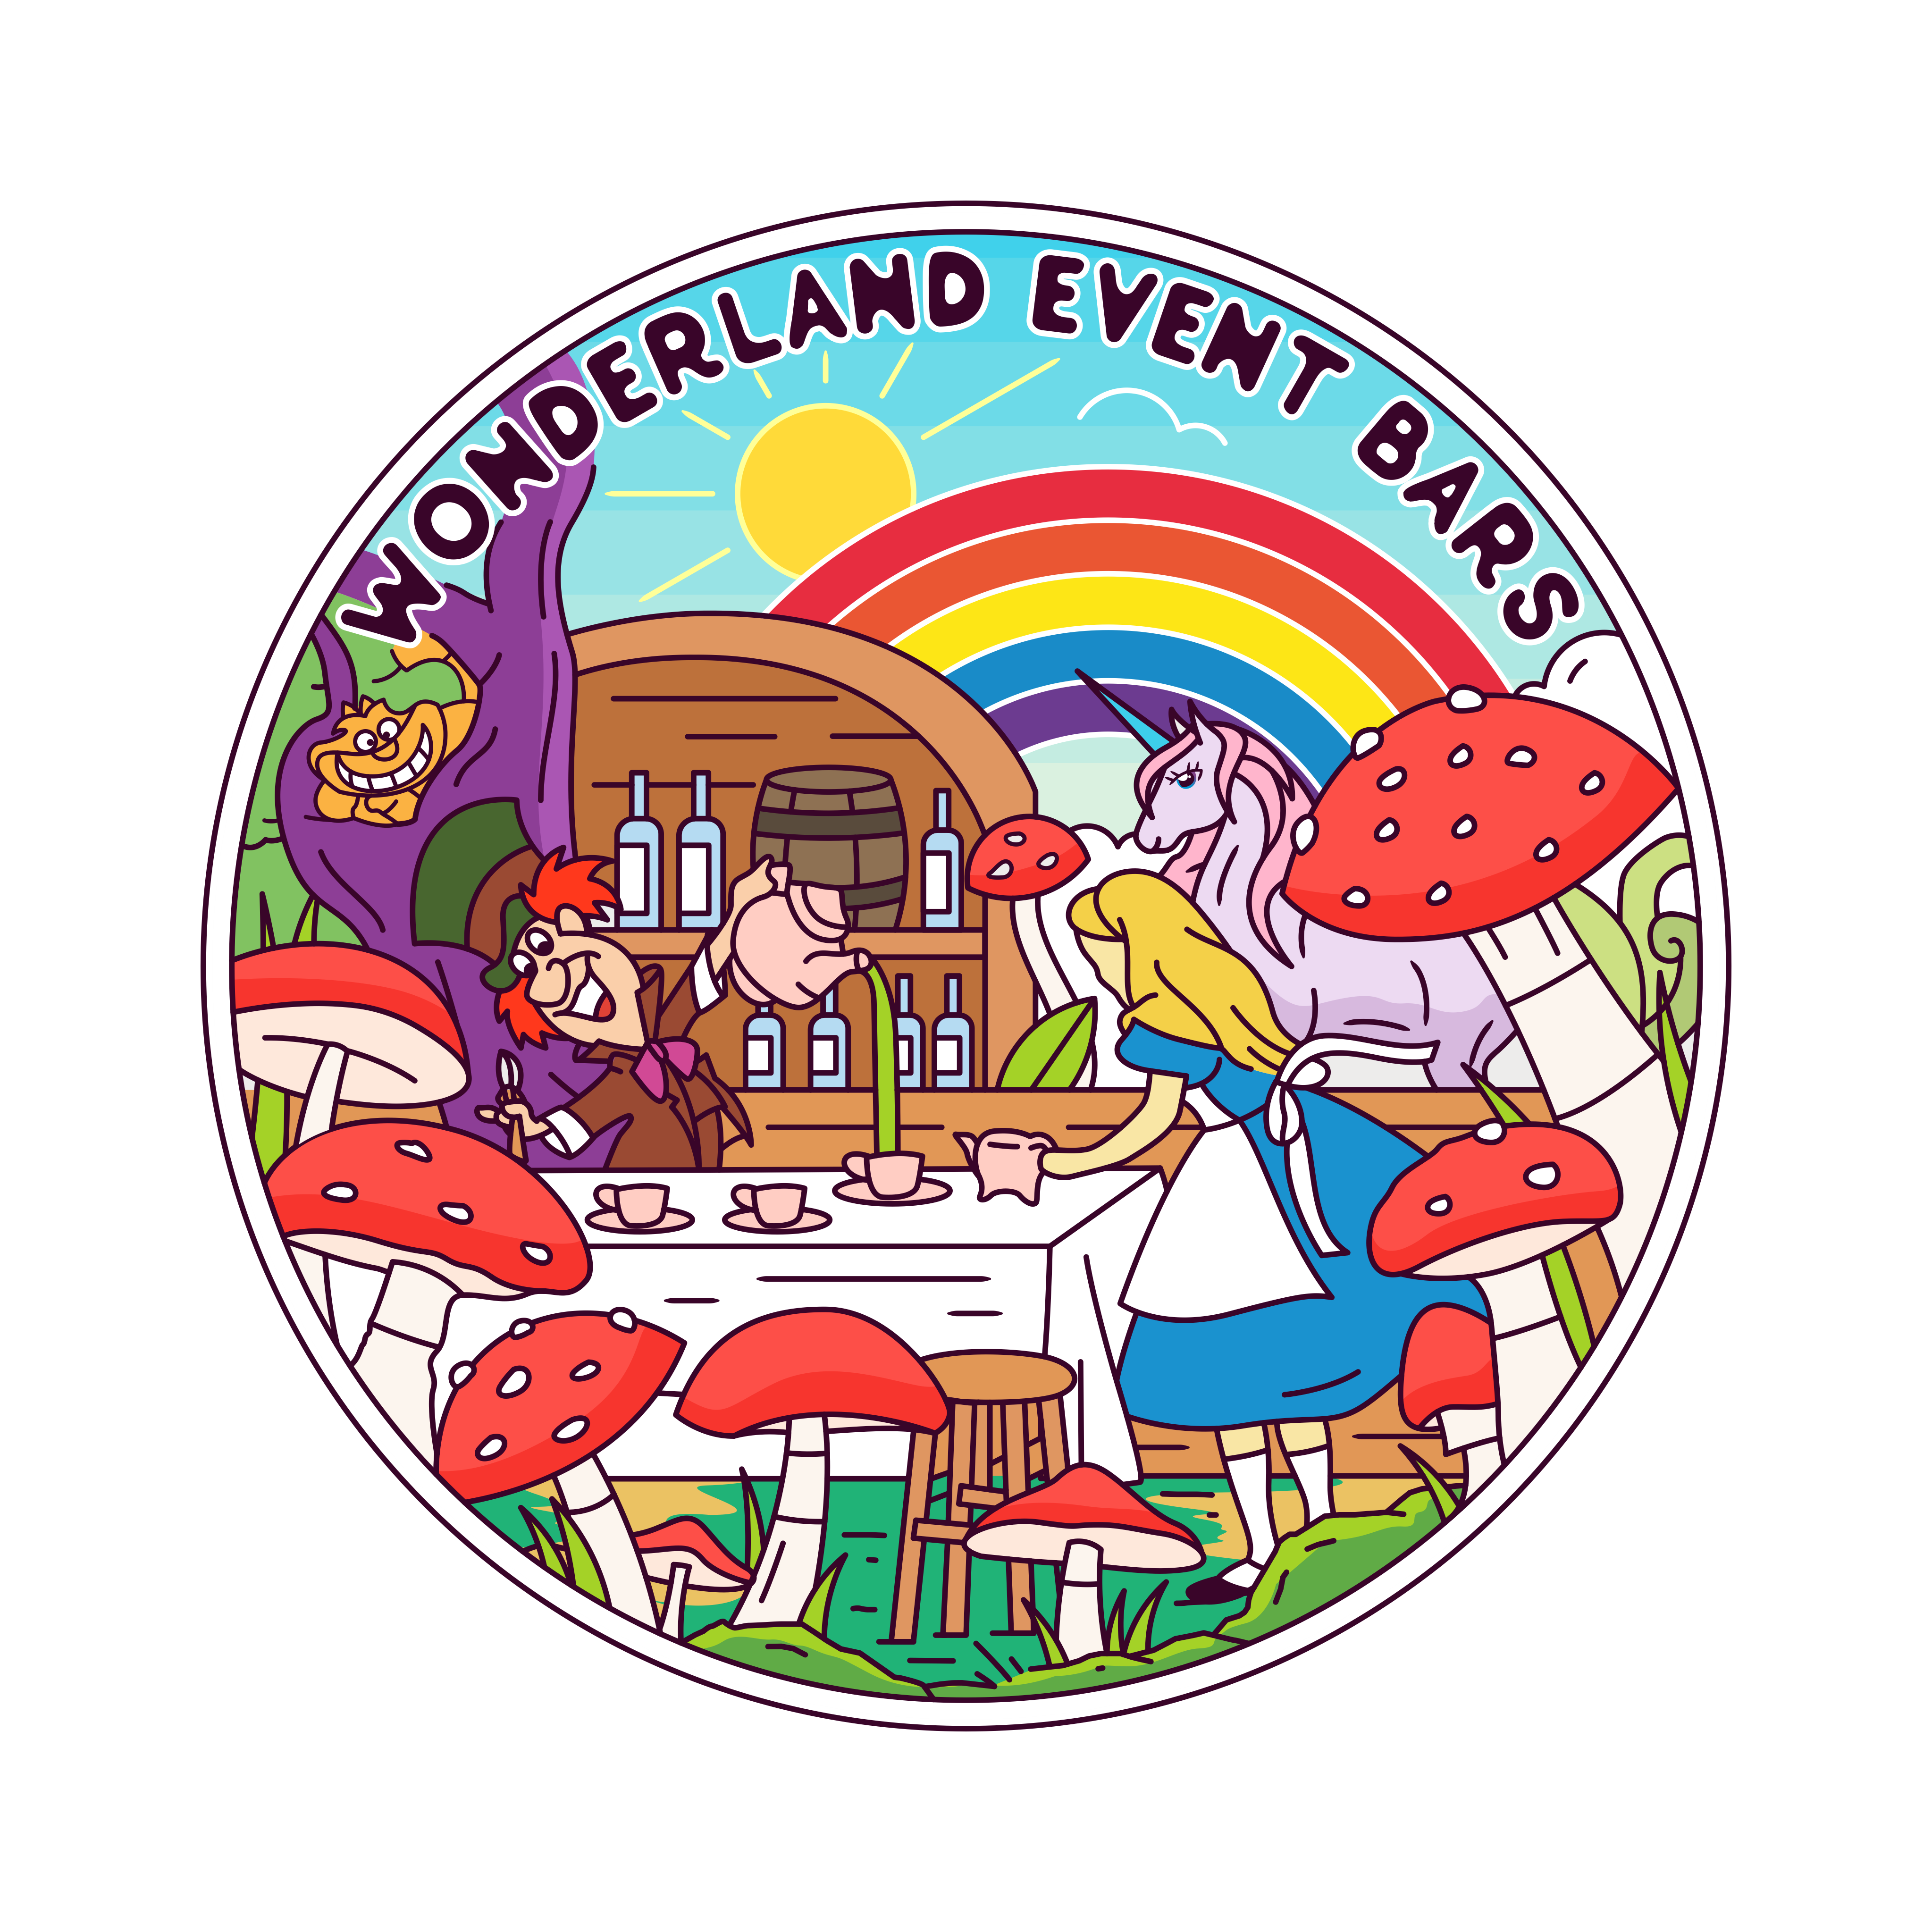 Wonderland Event Bars